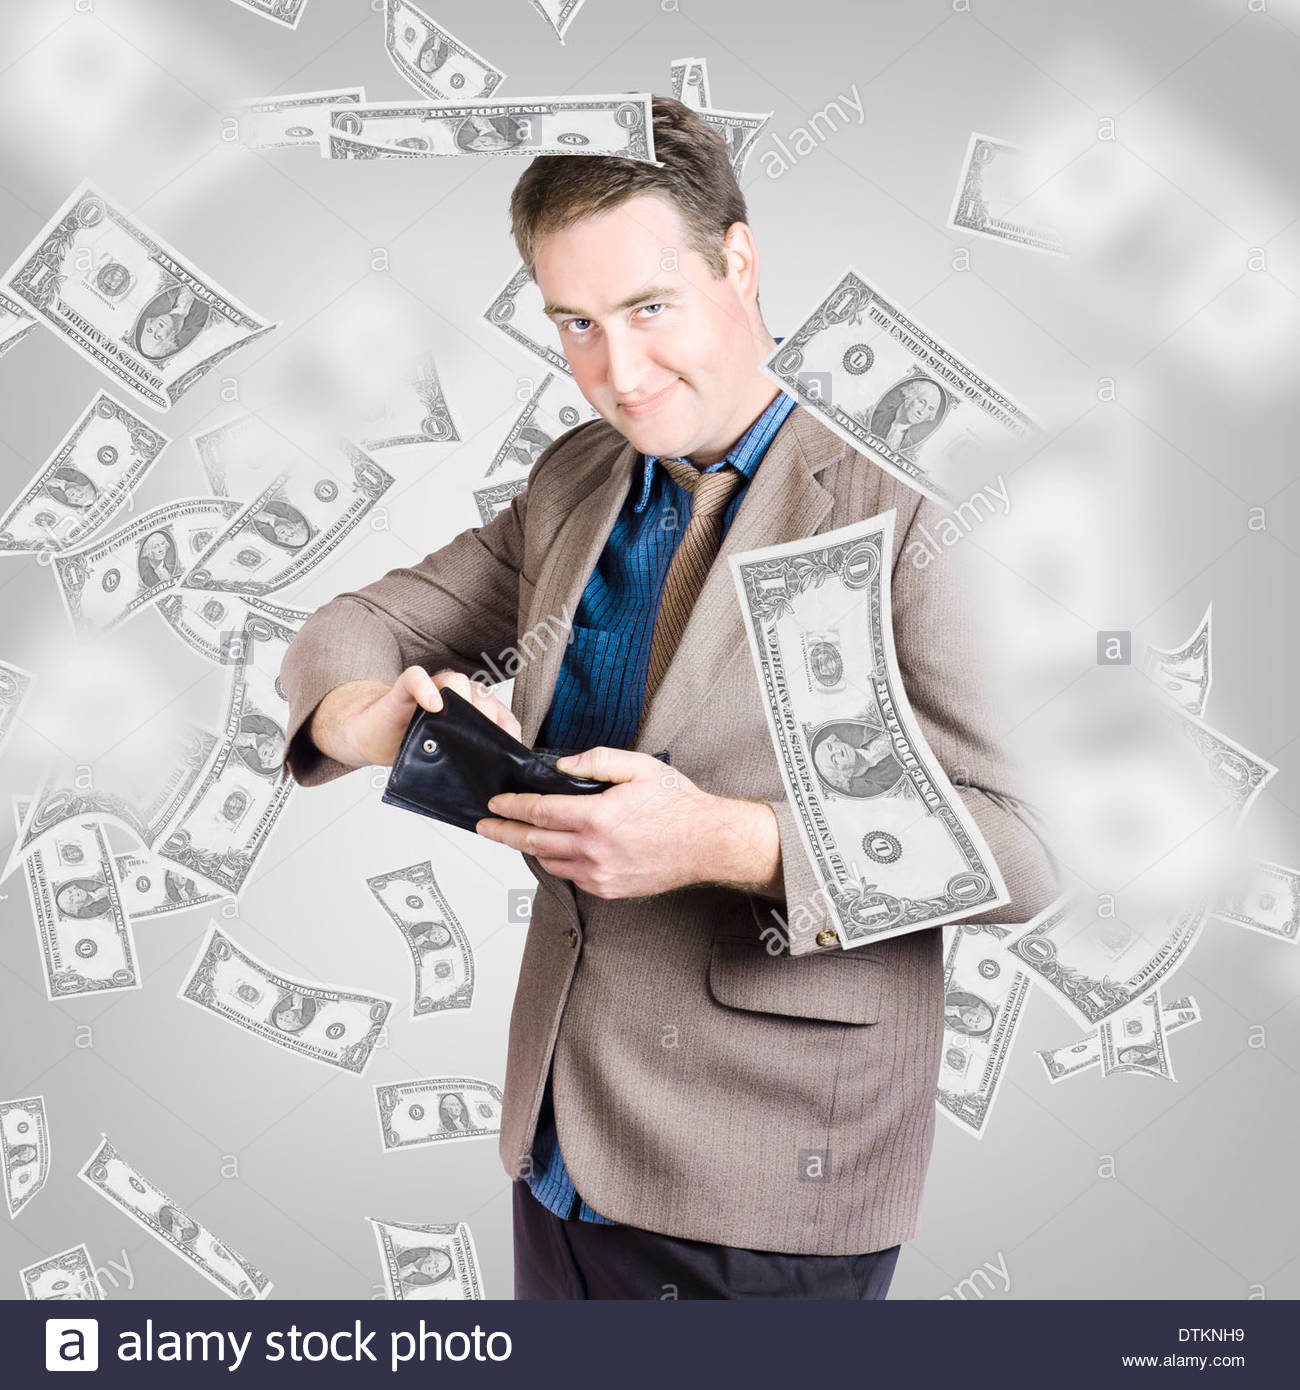 worksheet Counting Dollar Bills creative design portrait of a wealthy businessman counting american dollar bills in wallet under shower money financial